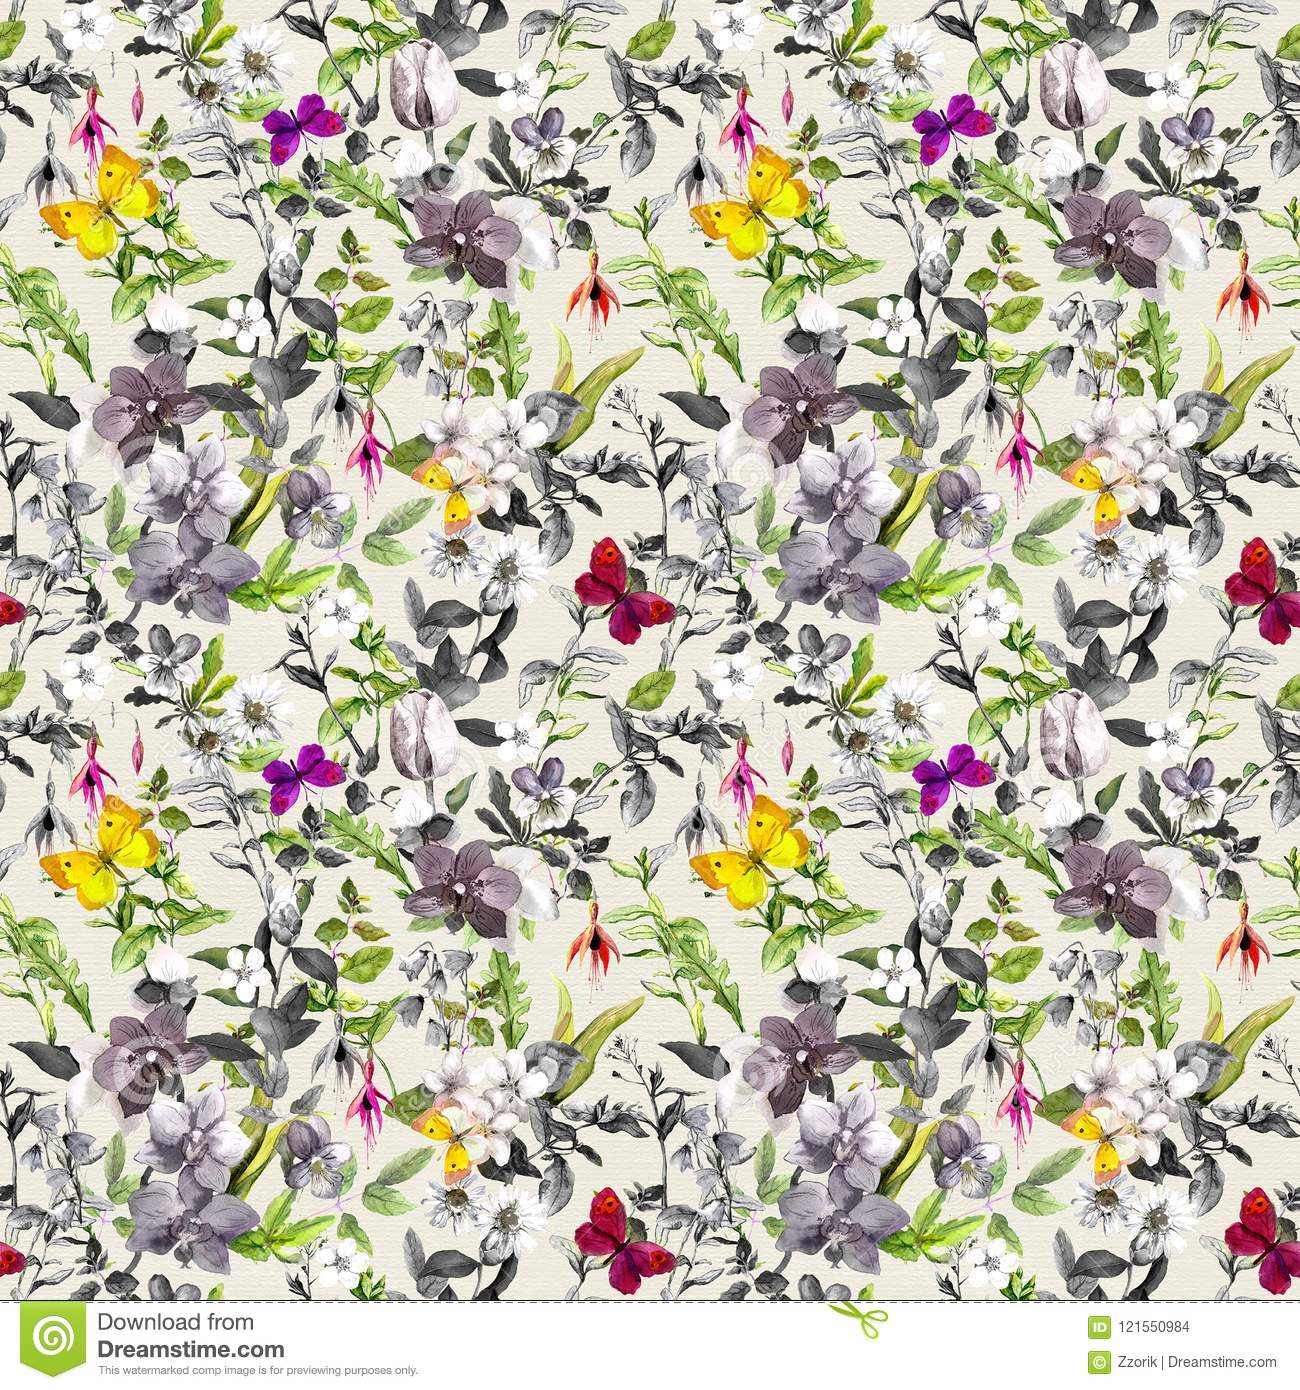 Seamless Wallpaper Flowers Butterflies Meadow Floral Pattern In